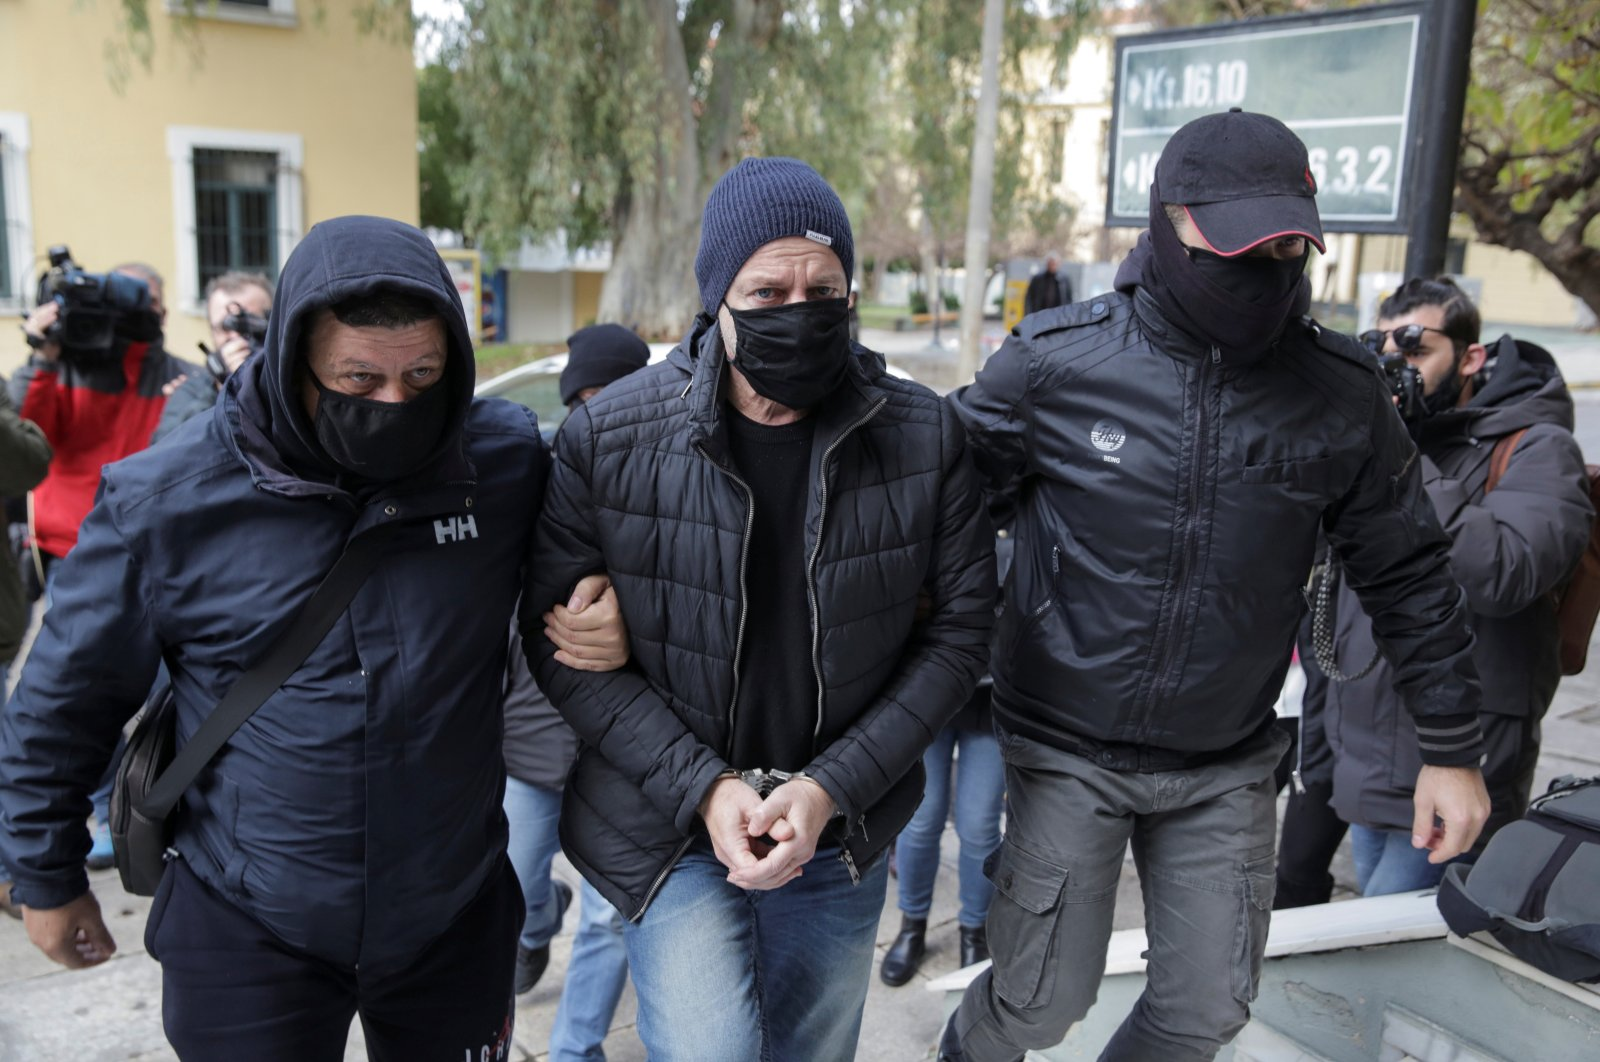 Greek actor and former director of Greece's National Theatre Dimitris Lignadis is escorted by plain clothes police officers as he enters the prosecutor's office in Athens, Greece, Feb. 21, 2021. (Reuters Photo)